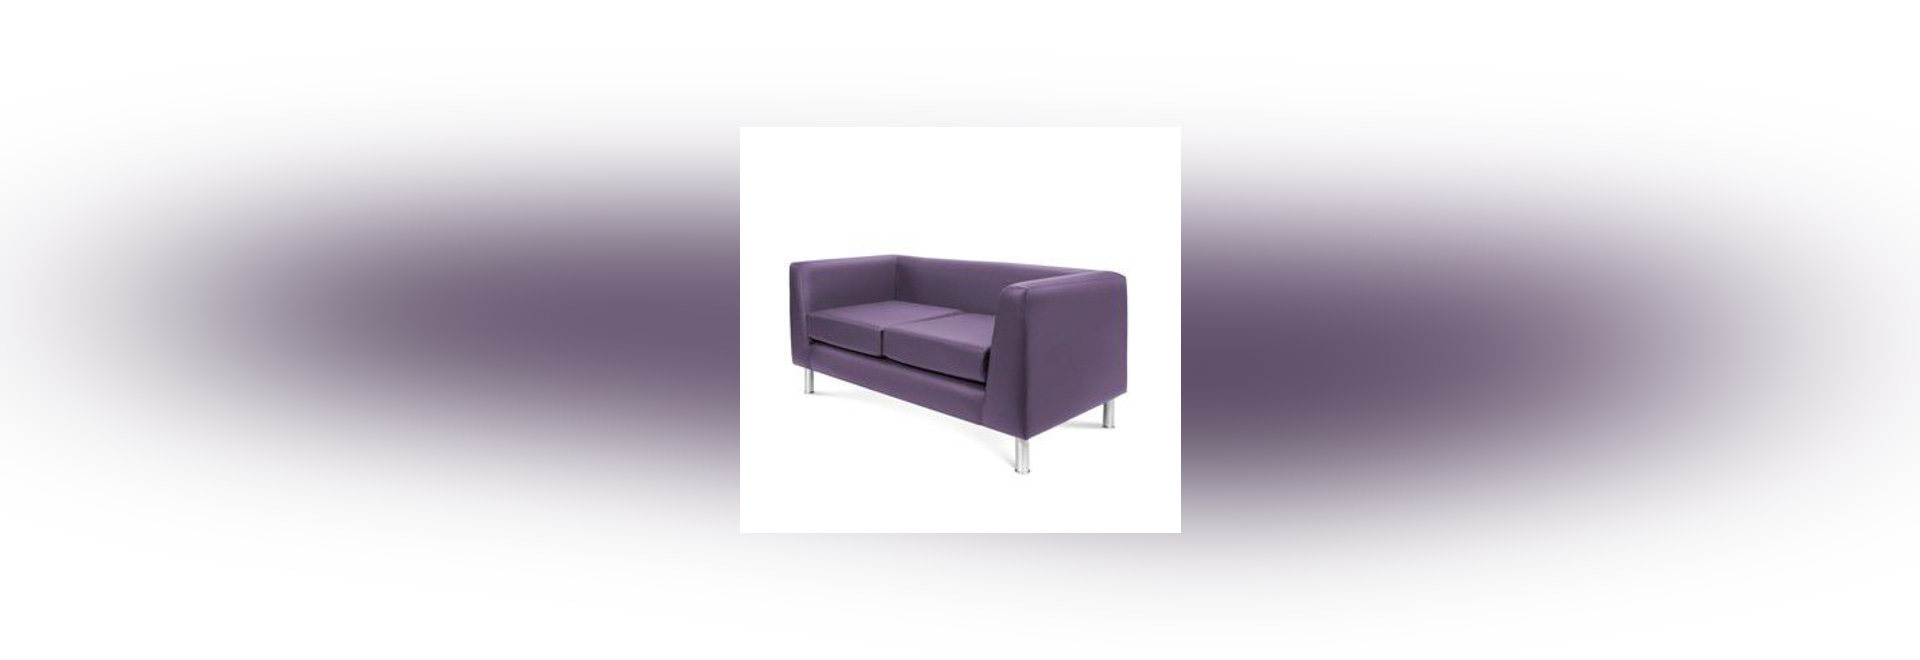 NEW: 2-seater sofa by Teal